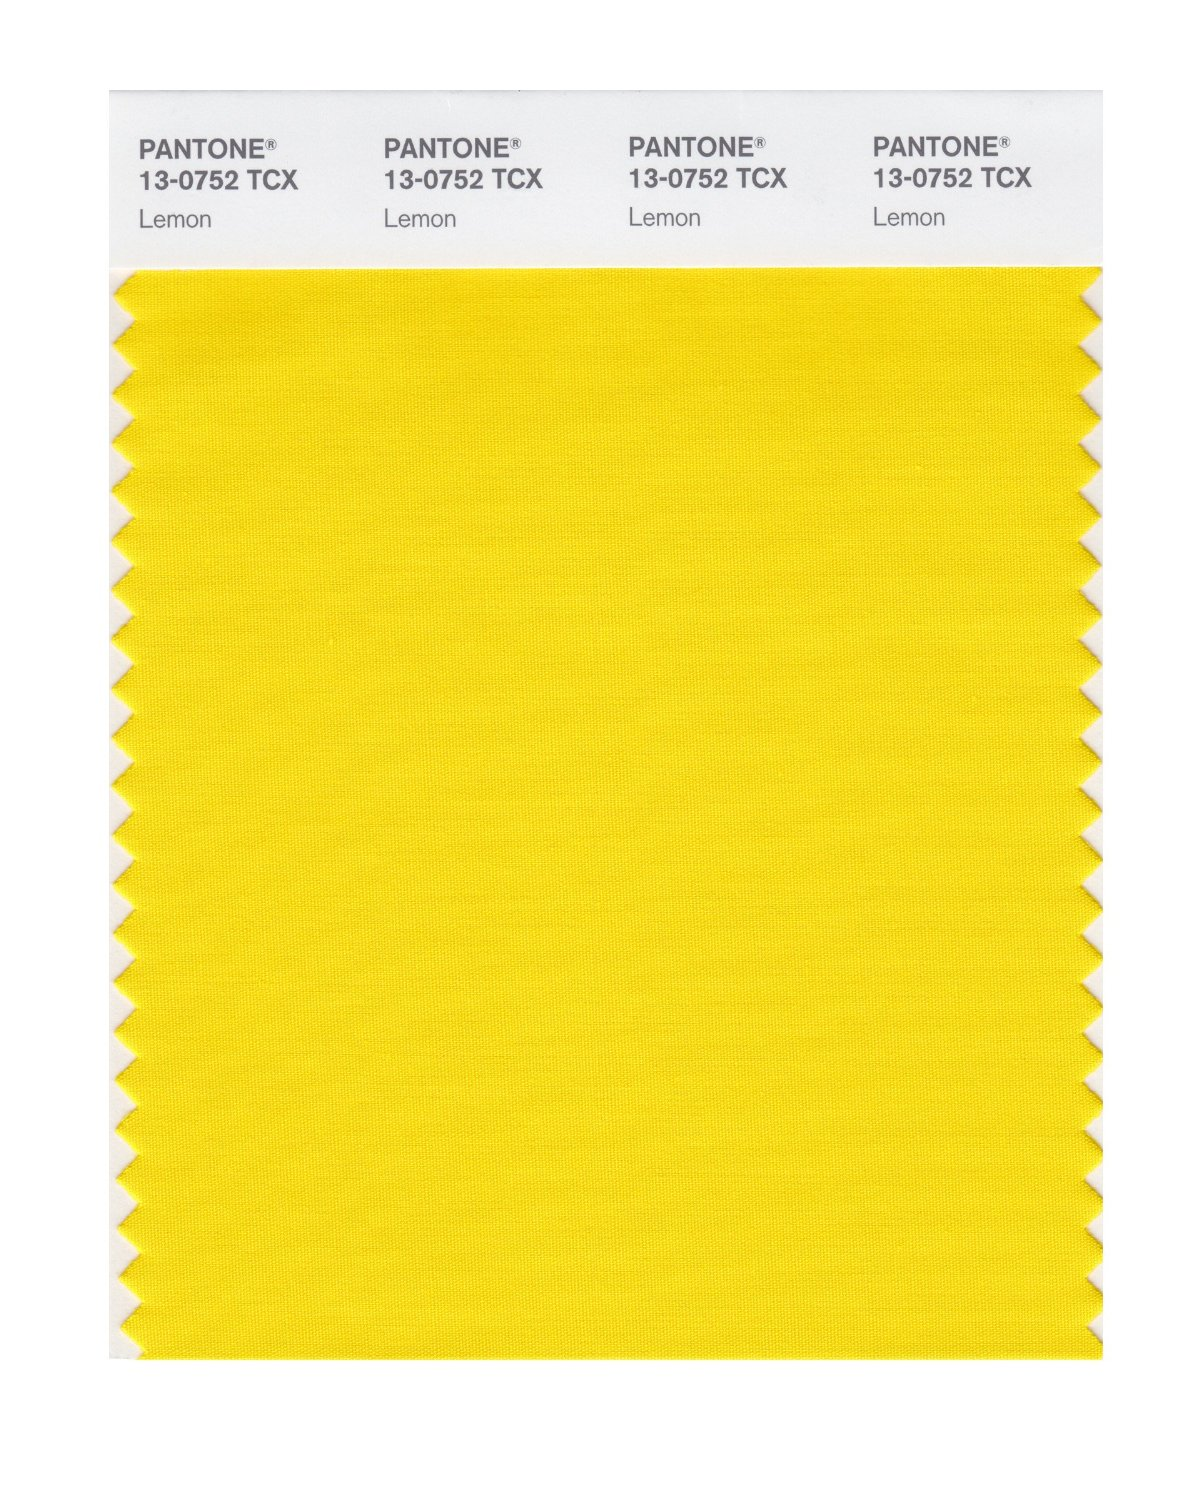 Pantone Smart Swatch 13-0752 Lemon